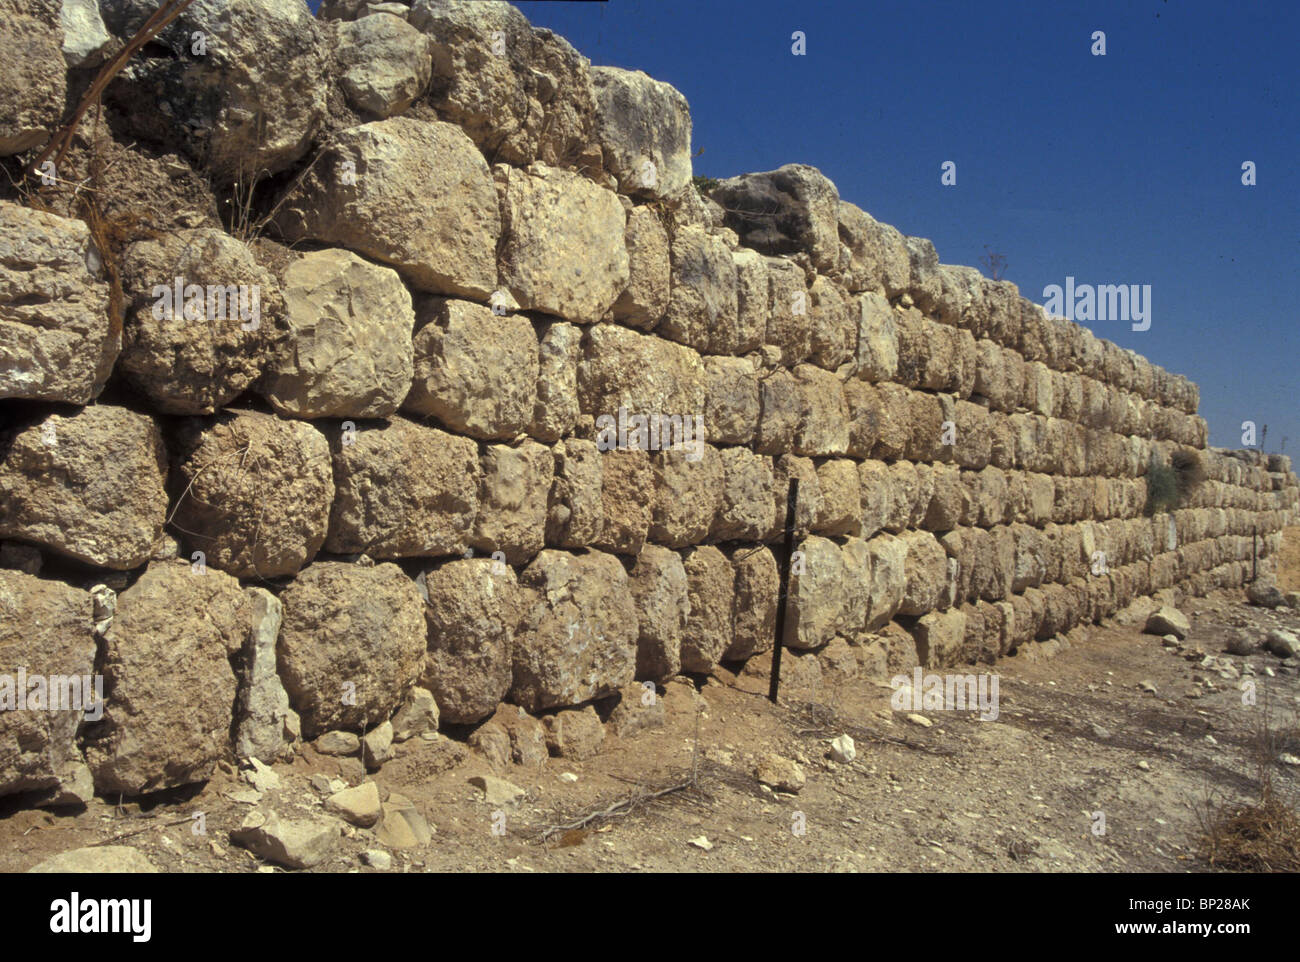 2003. LACHISH - THE CITY WALLS - Stock Image